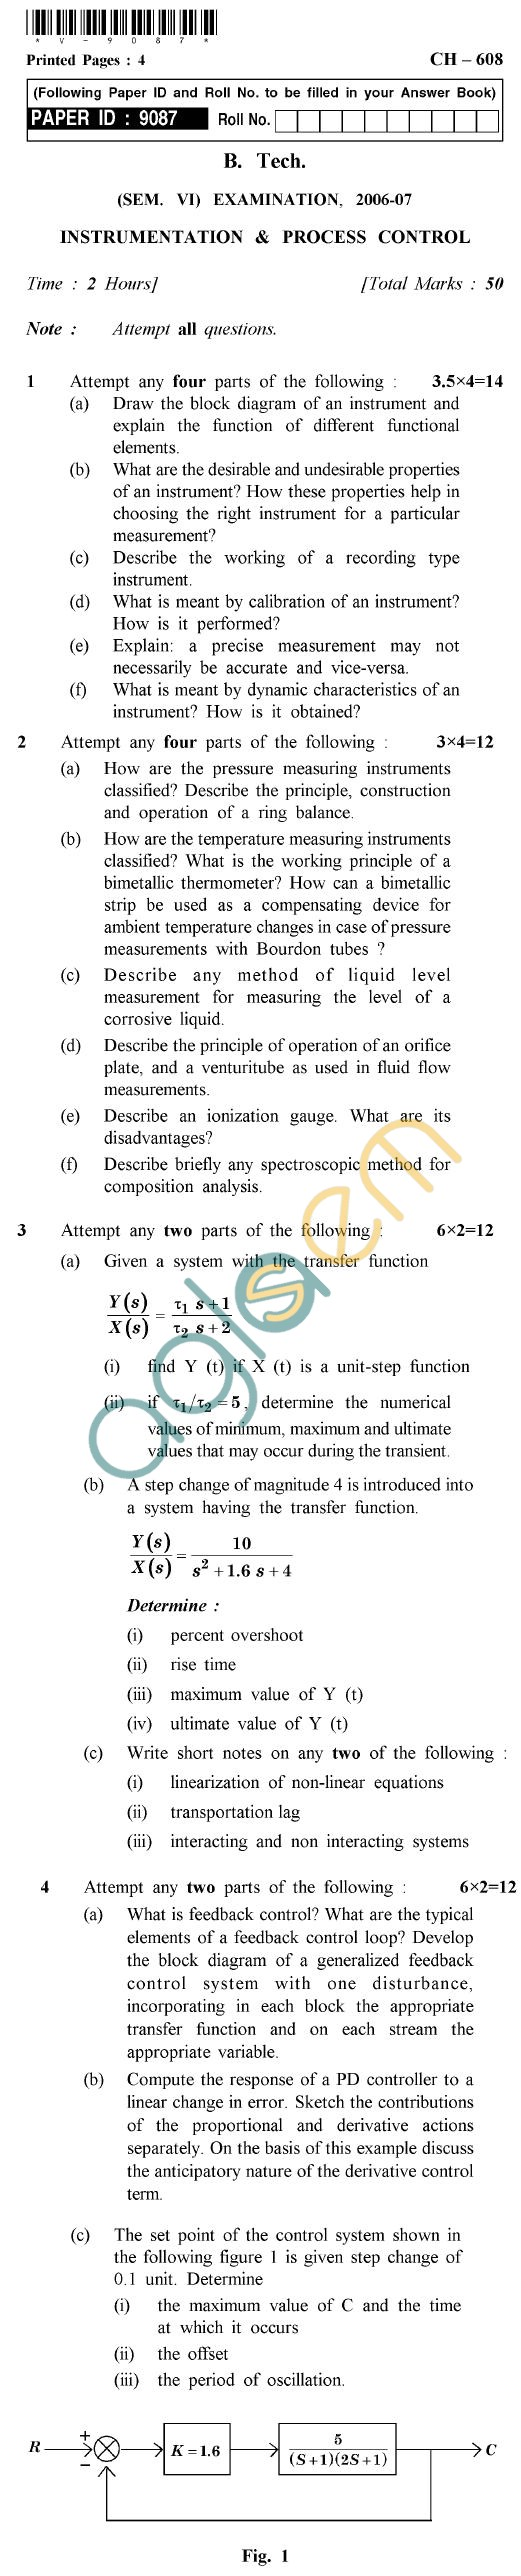 UPTU  B.Tech Question Papers - CH-608 - Instrumentation & Process Control